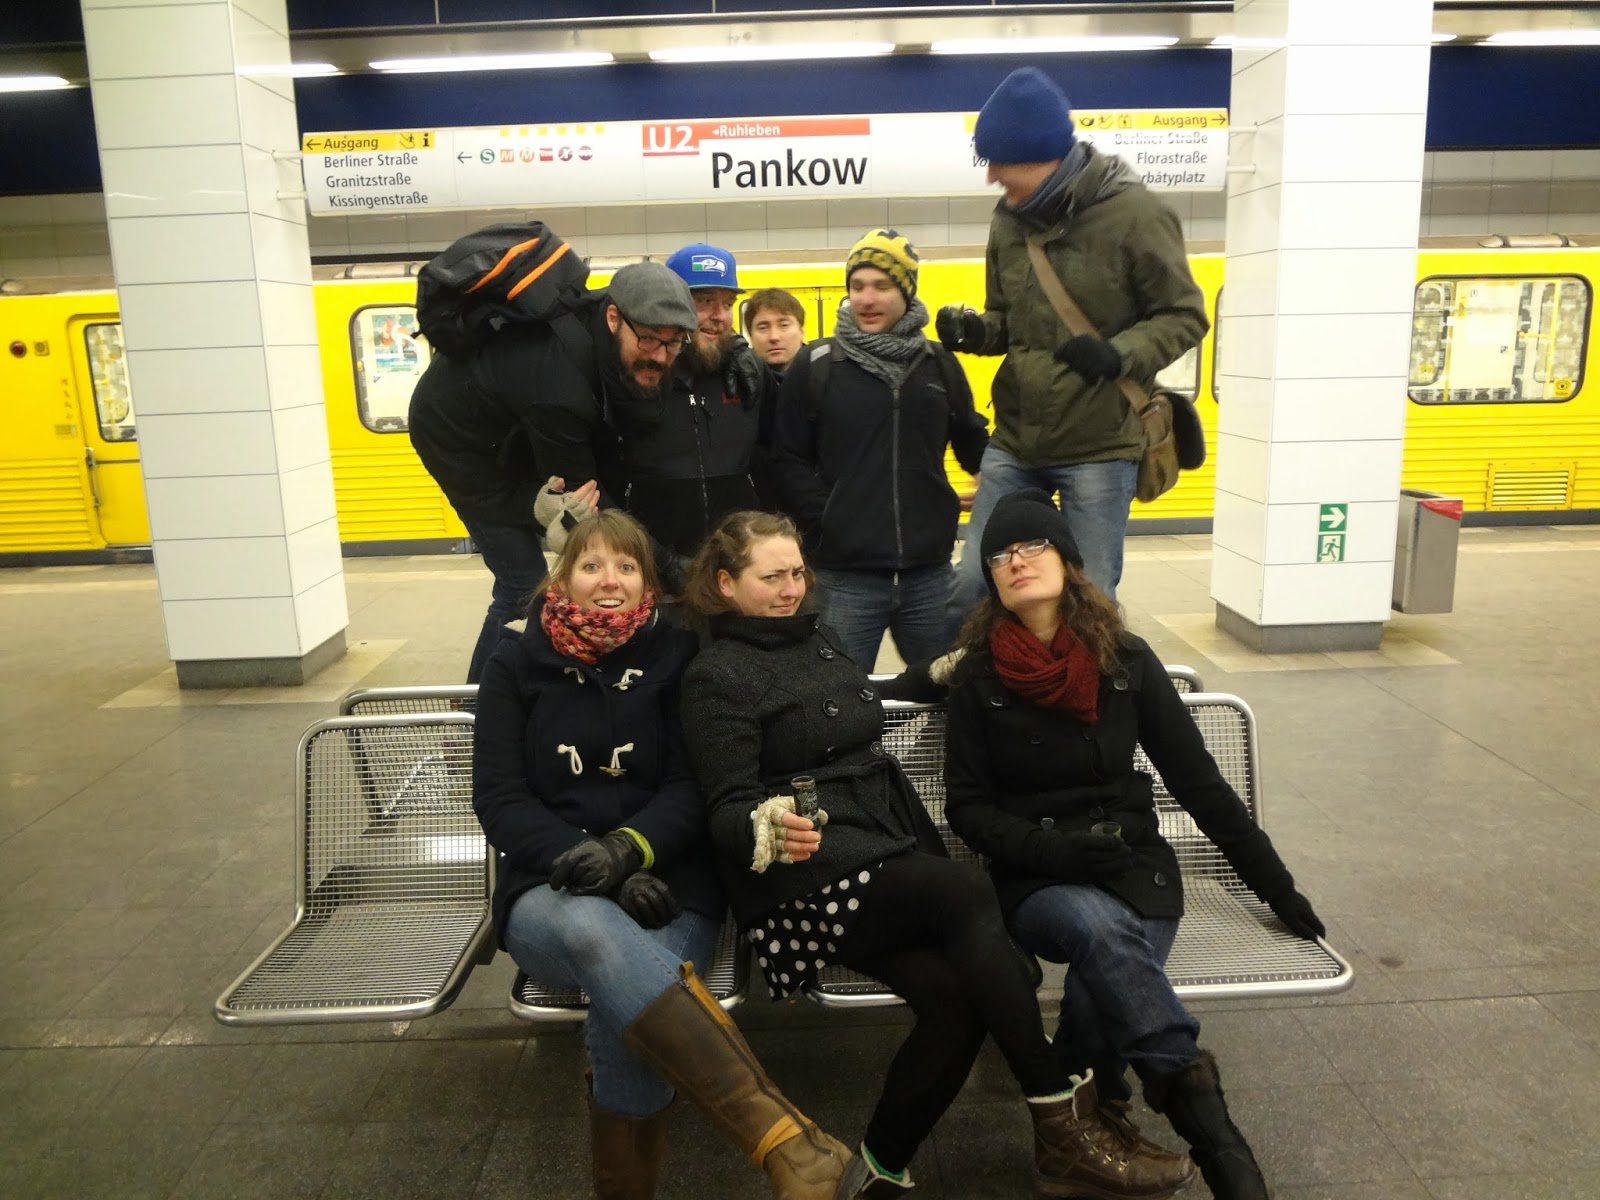 Drinking Tour of the Berlin U-Bahn